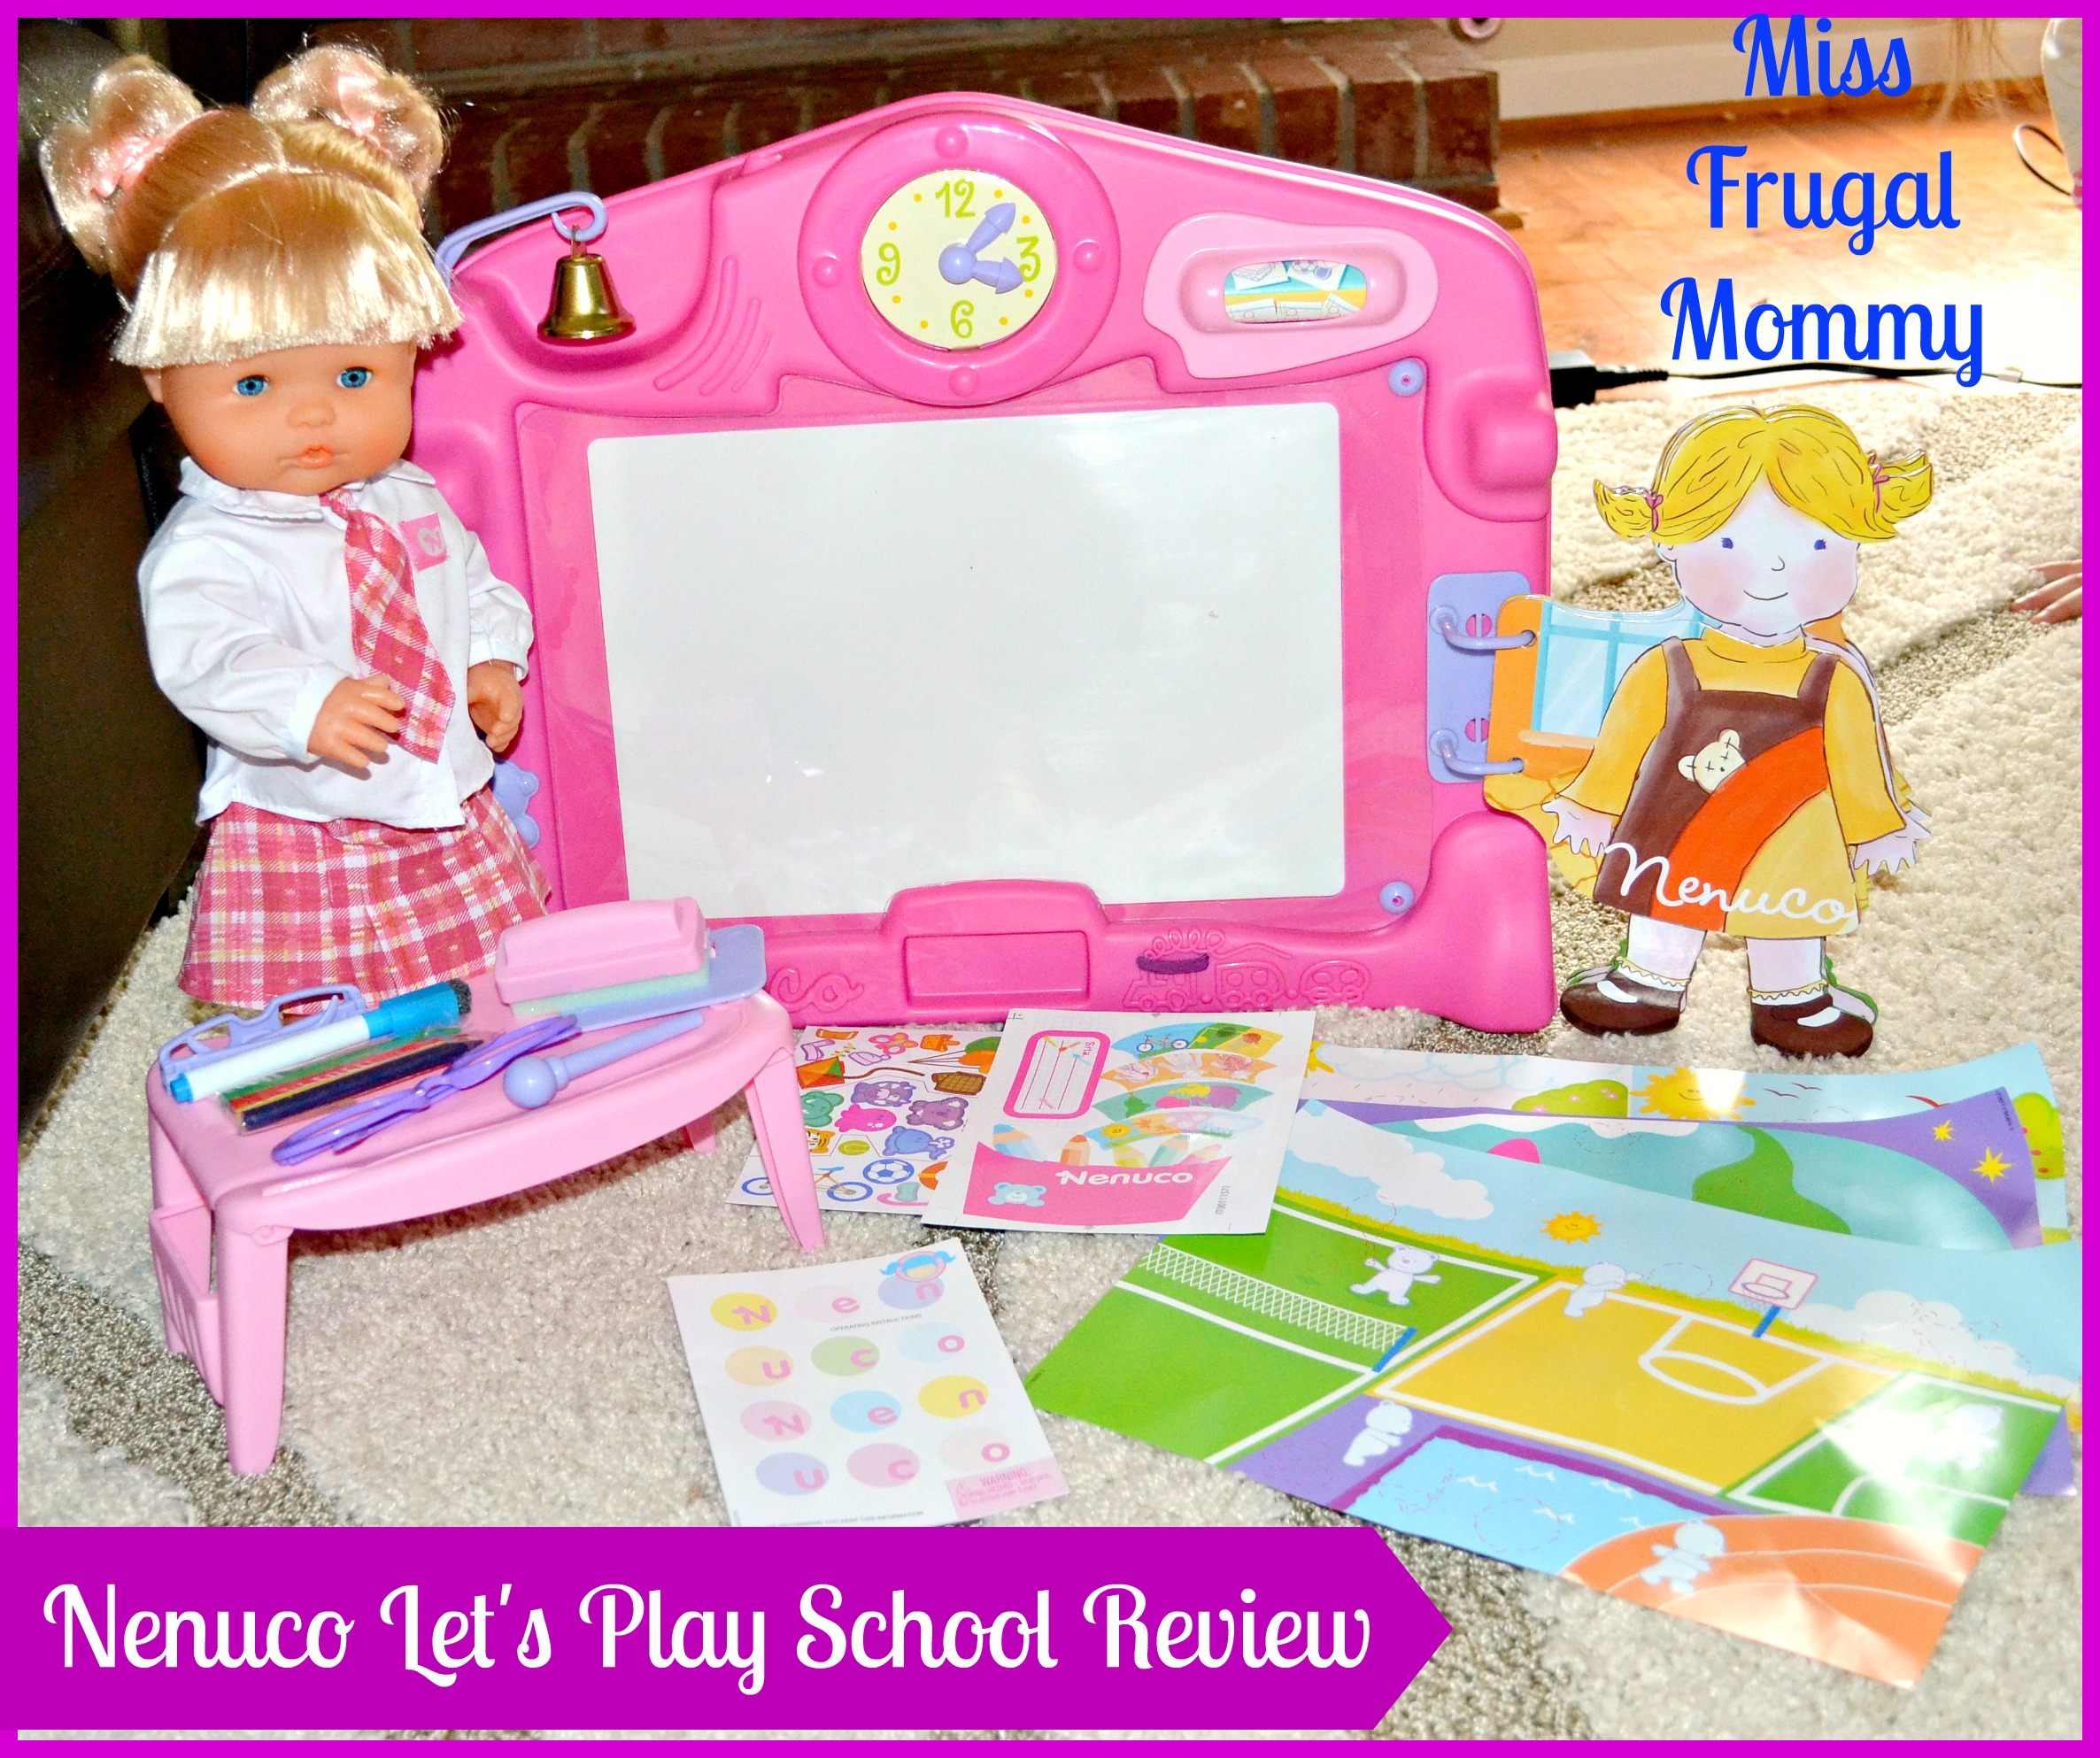 Nenuco Let's Play School Review